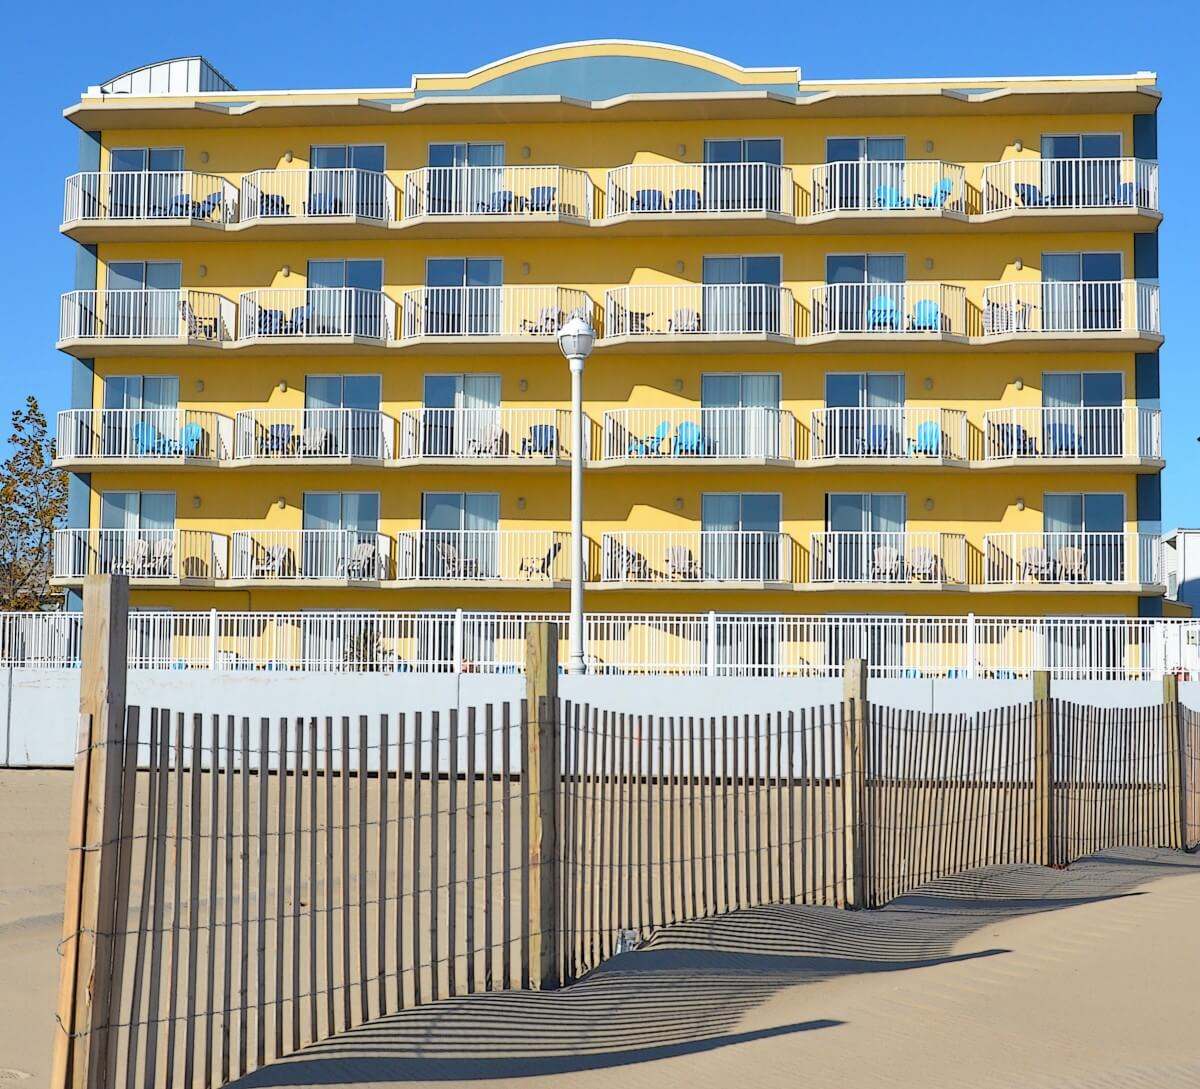 The Crystal Beach Hotel Is Located Beachfront On Boardwalk At 25th Street And Has Balconies A Pool With An Ocean View